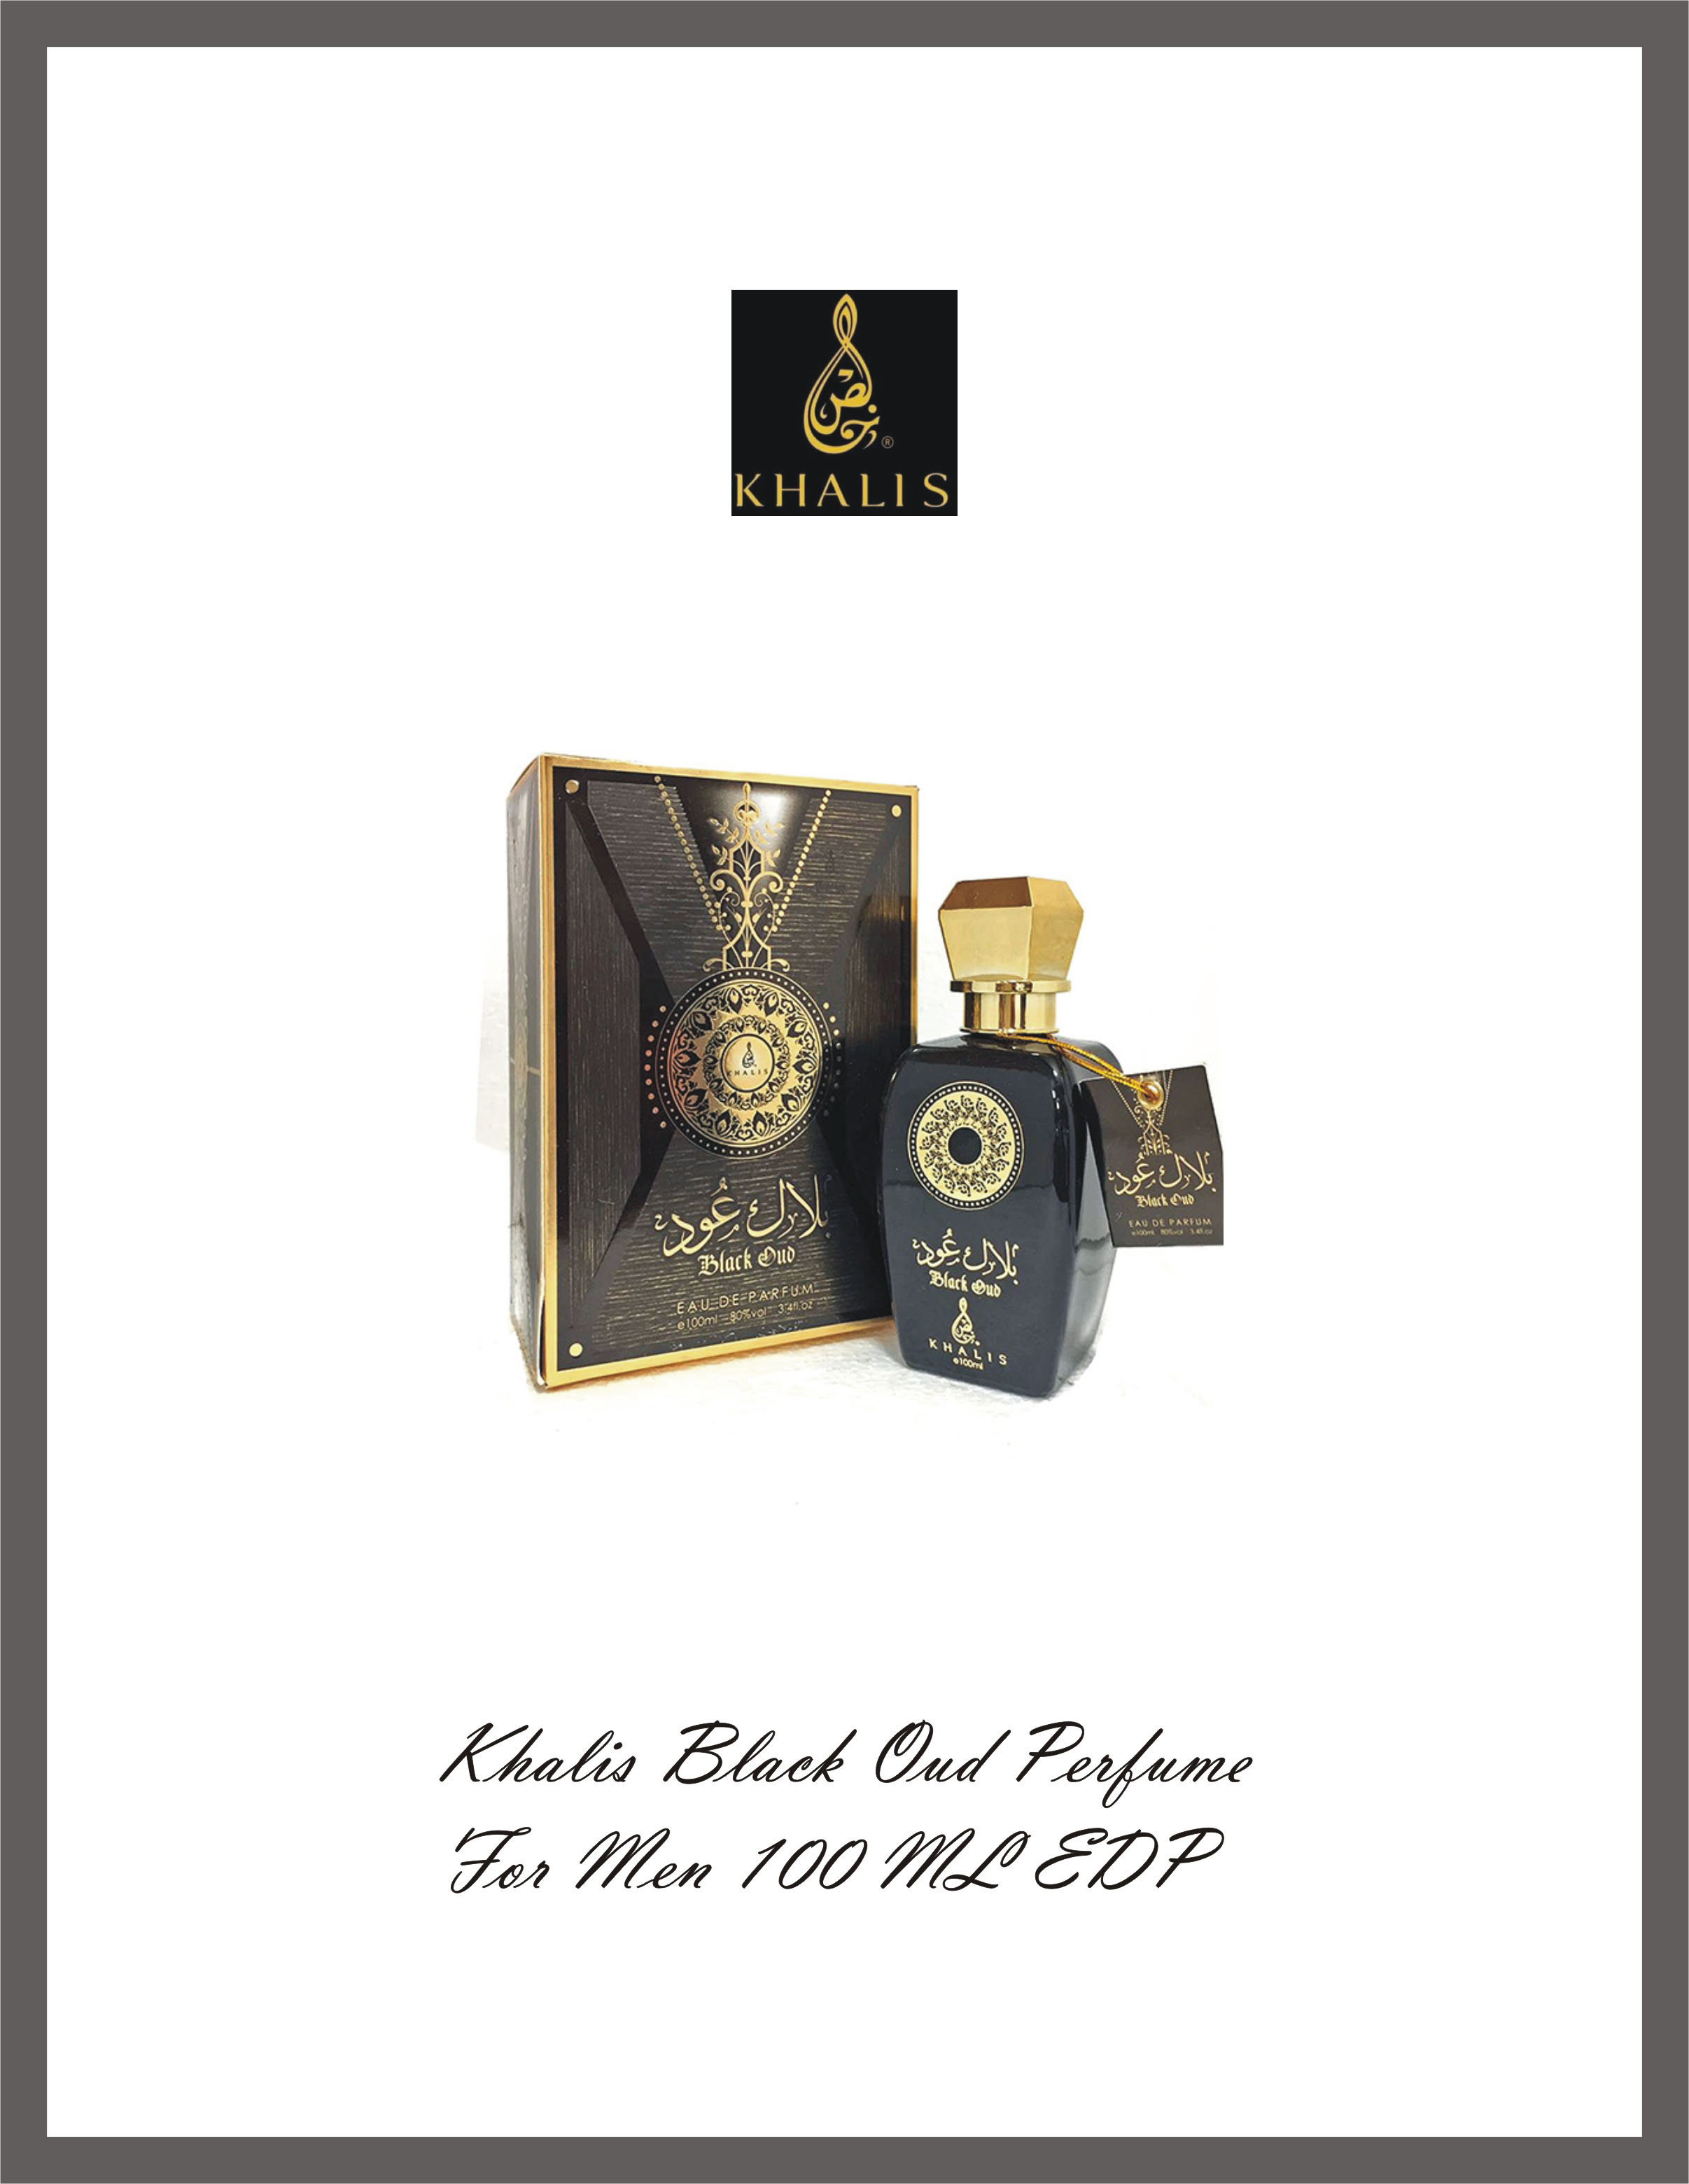 khalis-black-oud-perfume-for-men-100-ml-edp